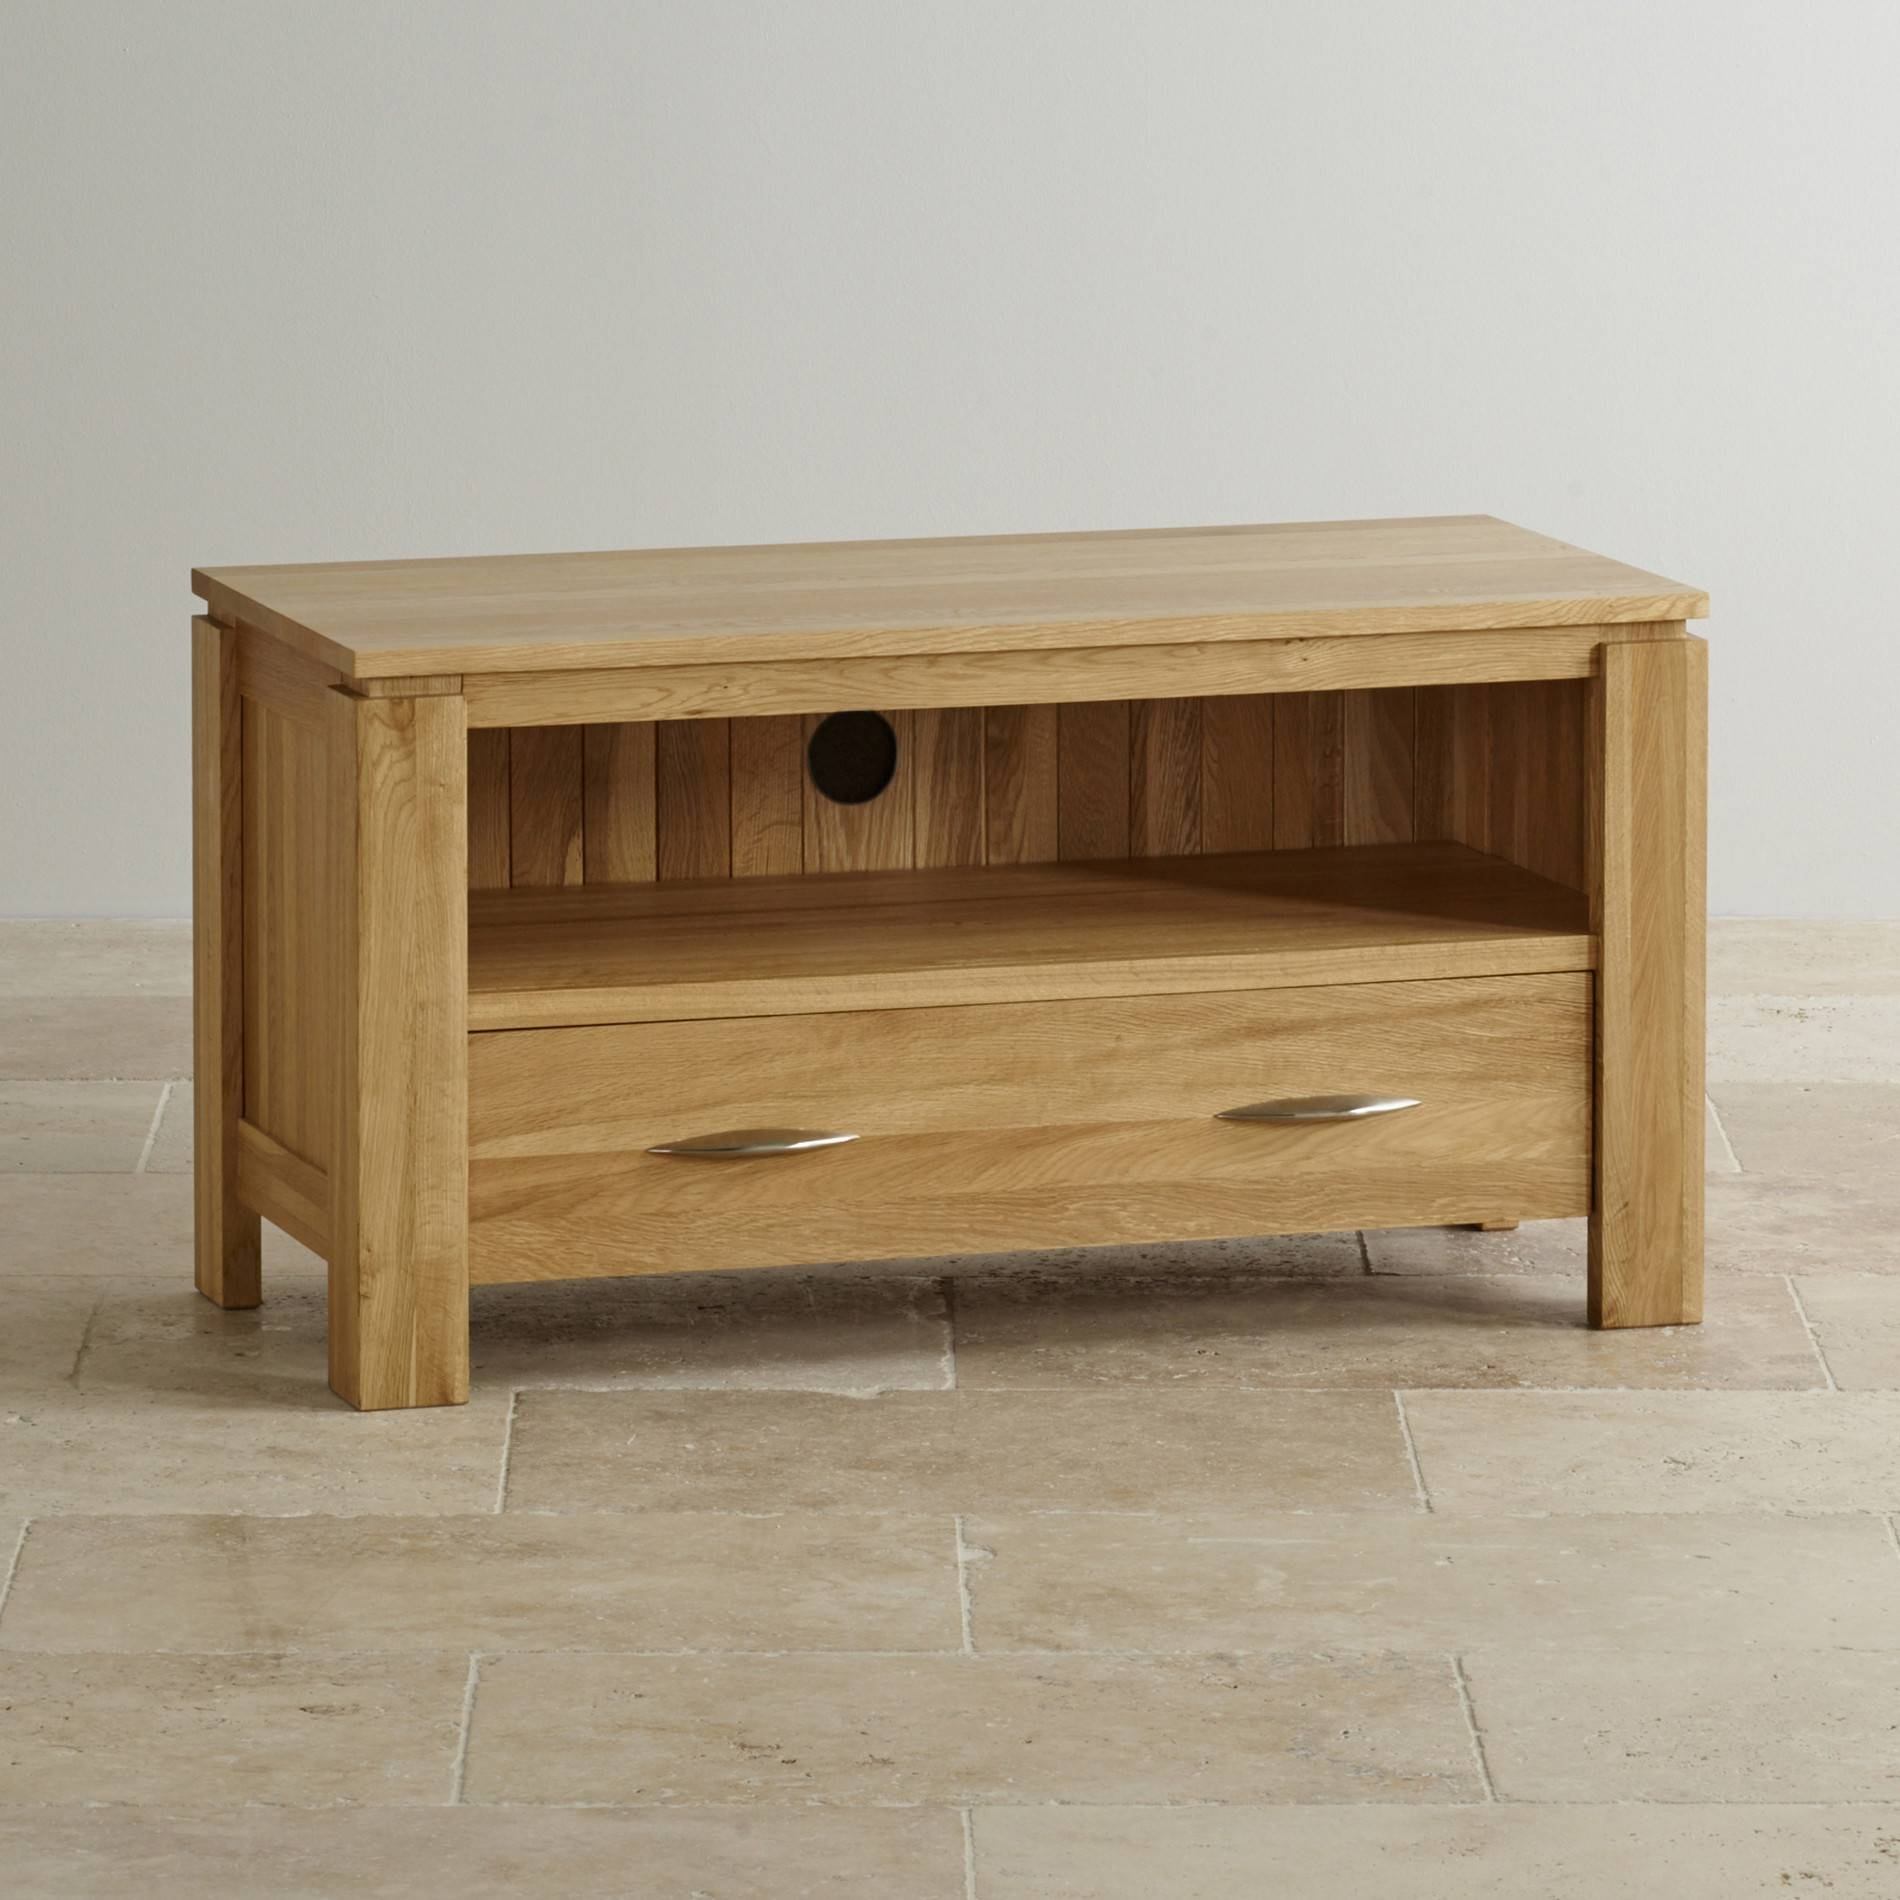 Tv Cabinets & Units | 100% Solid Oak | Oak Furniture Land with Oak Tv Cabinets for Flat Screens With Doors (Image 9 of 15)